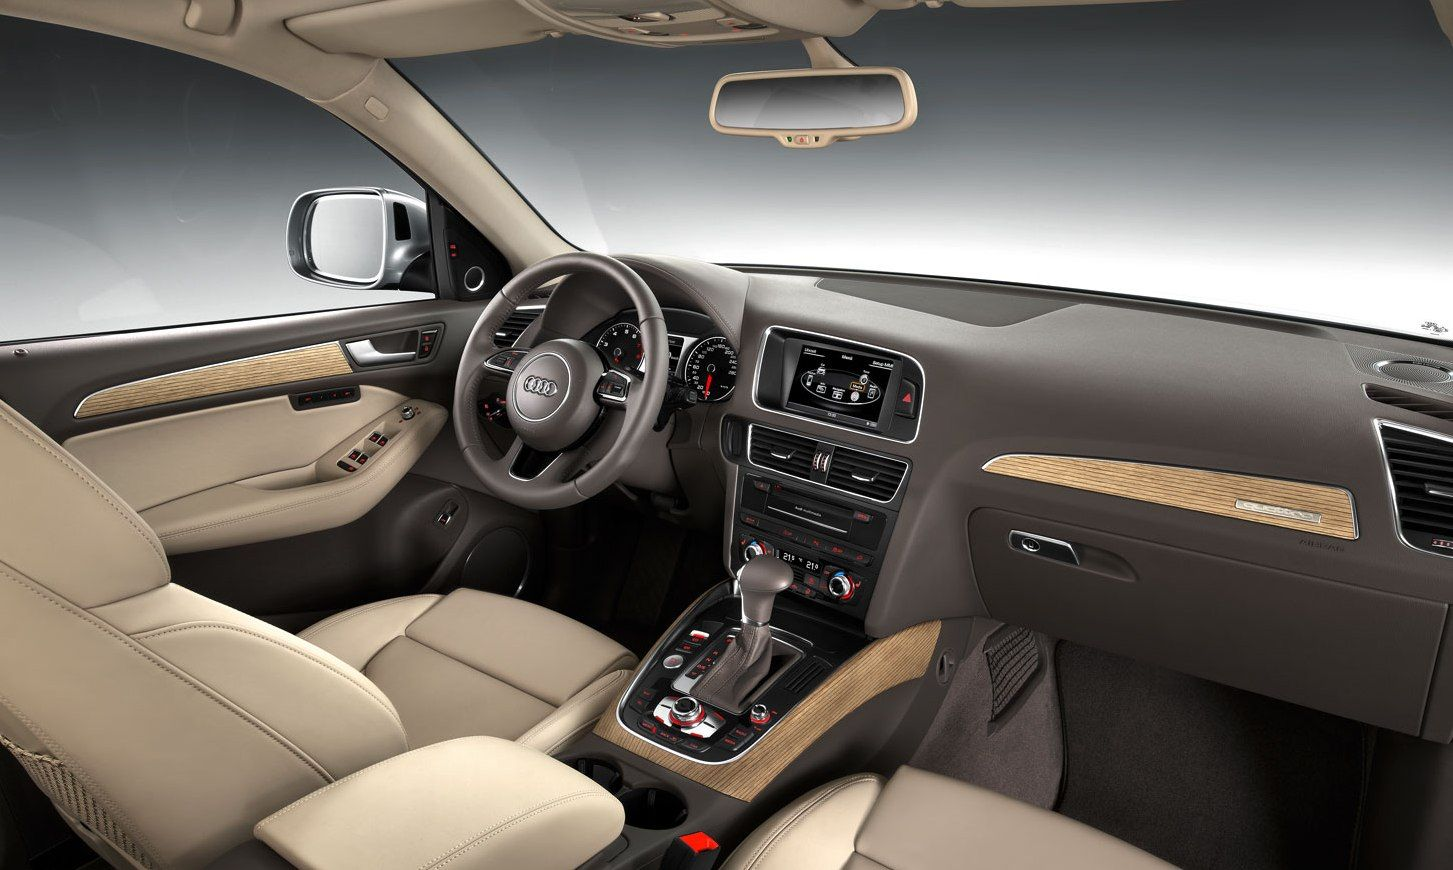 The 2013 Audi is a compact luxurious crossover available in 5 trim levels:  Premium Plus, Premium.